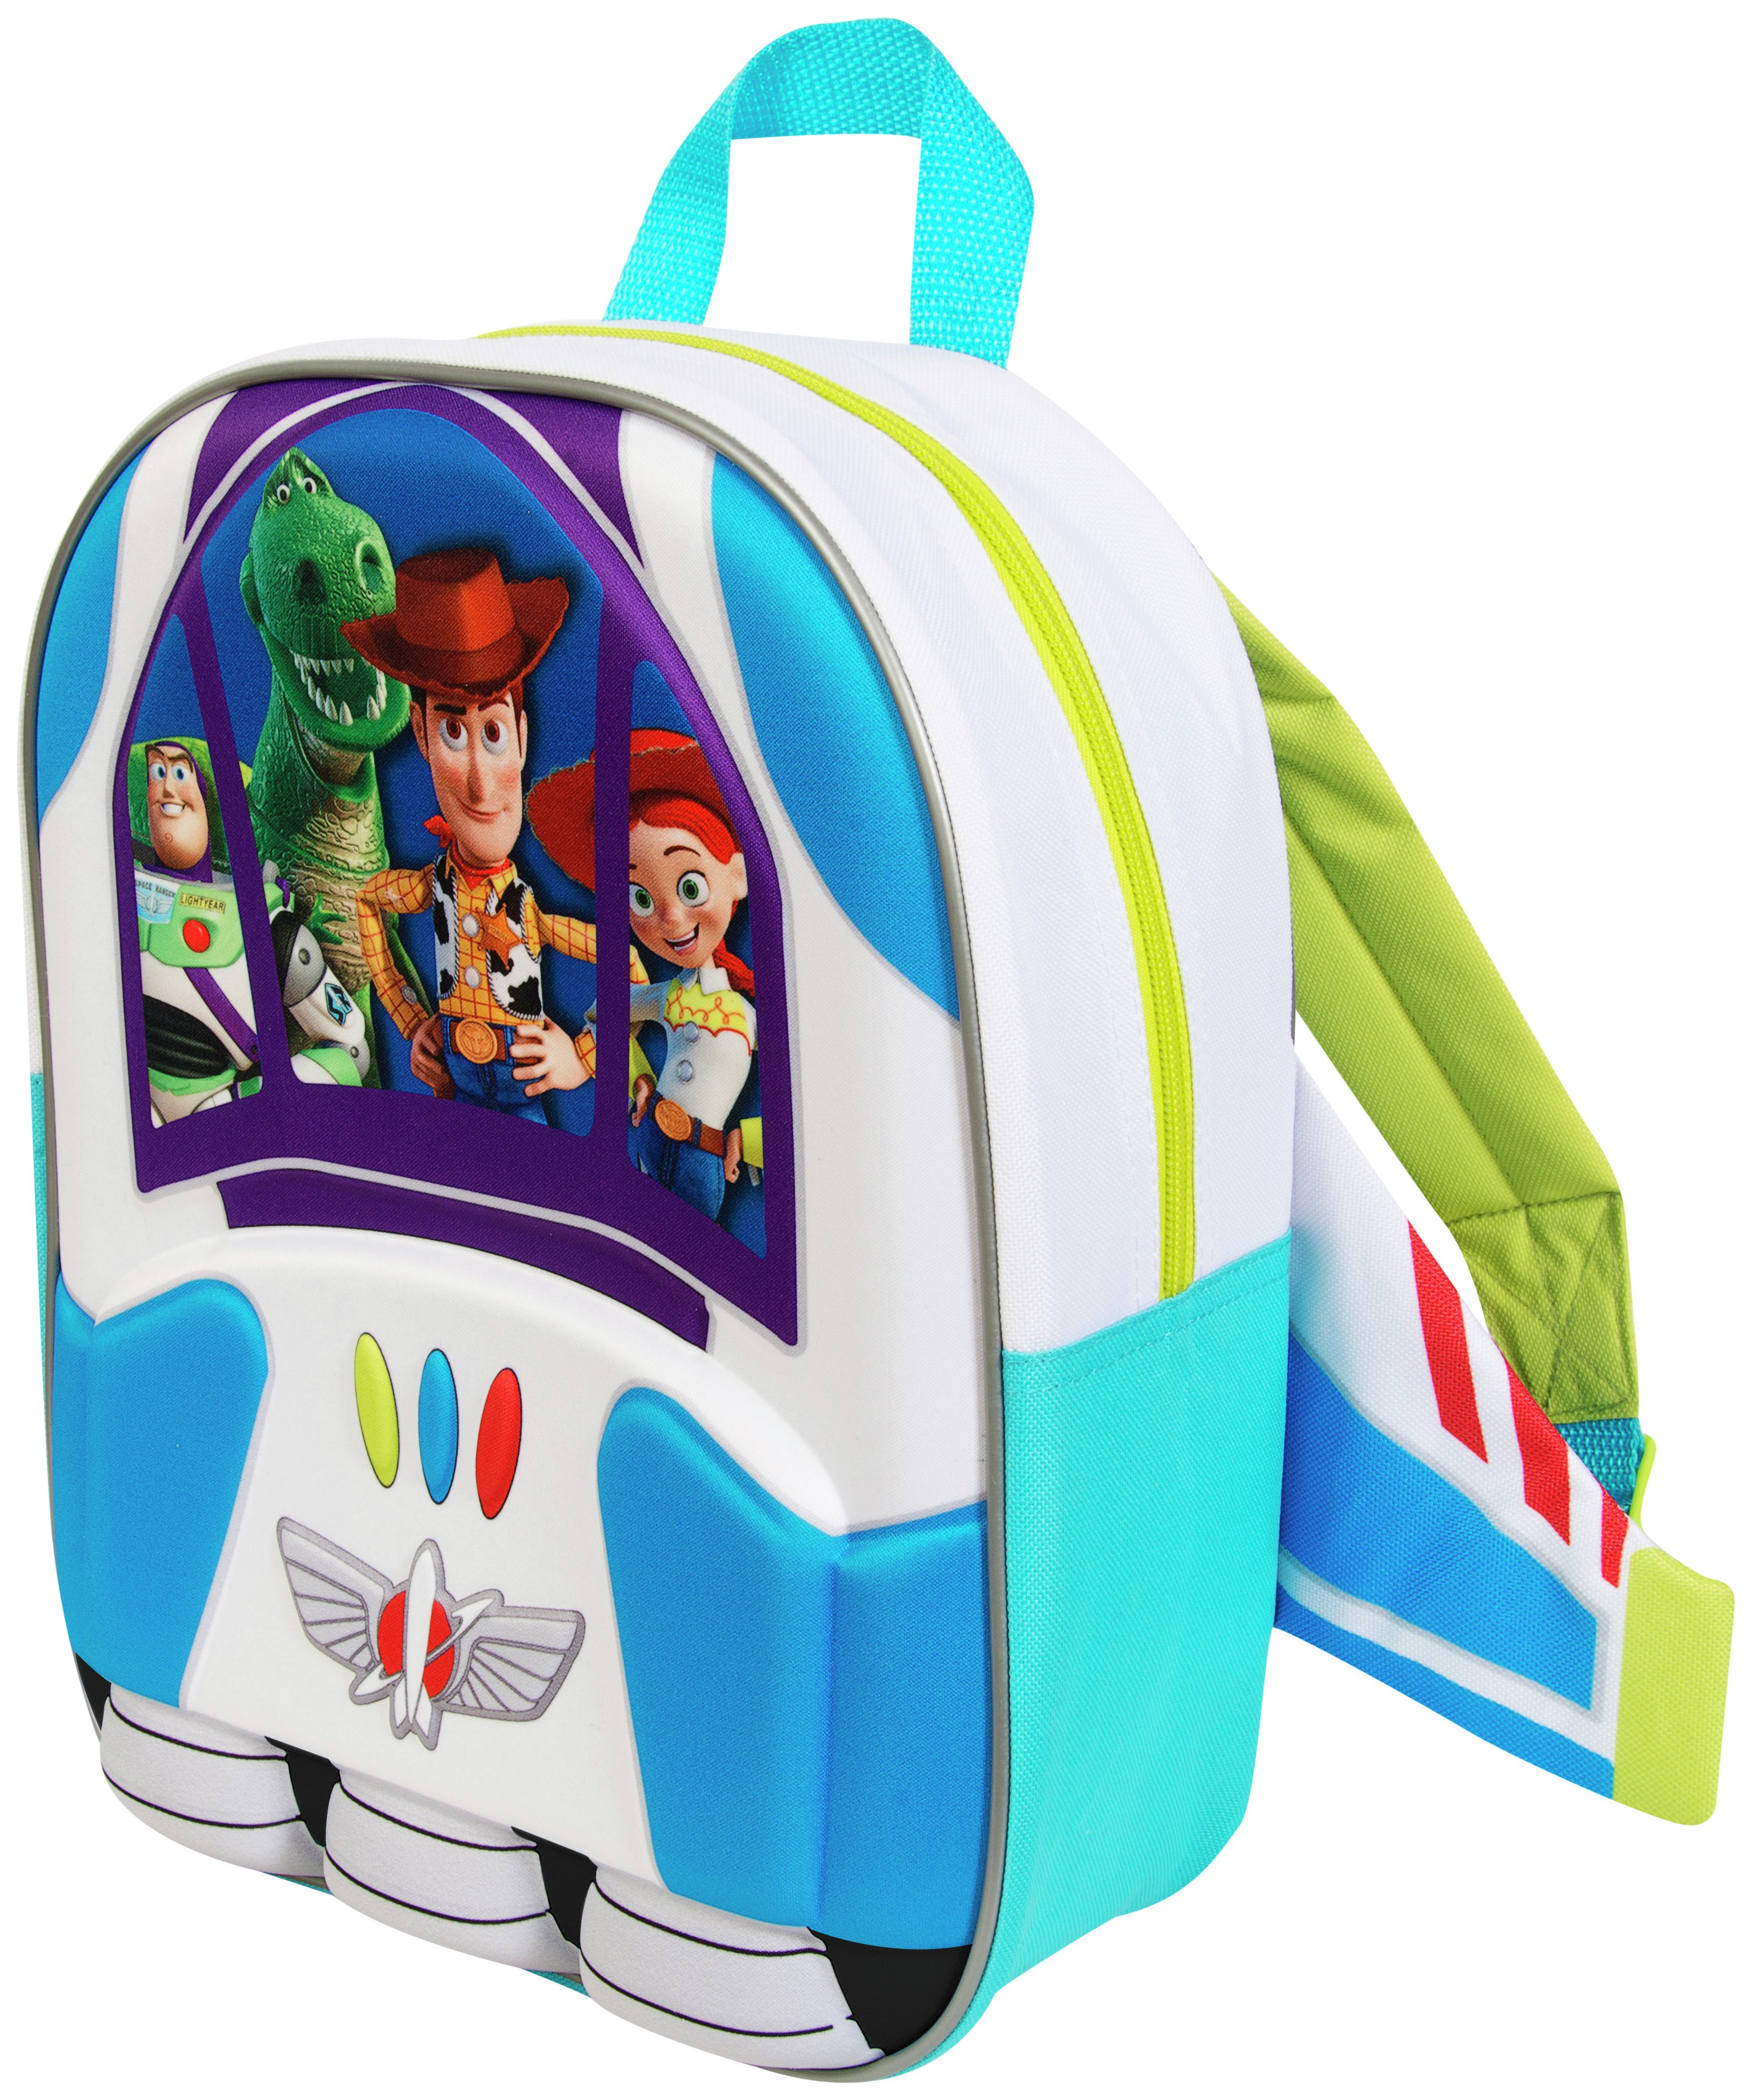 Buzz Lightyear Boys' Spaceship Backpack lowest price